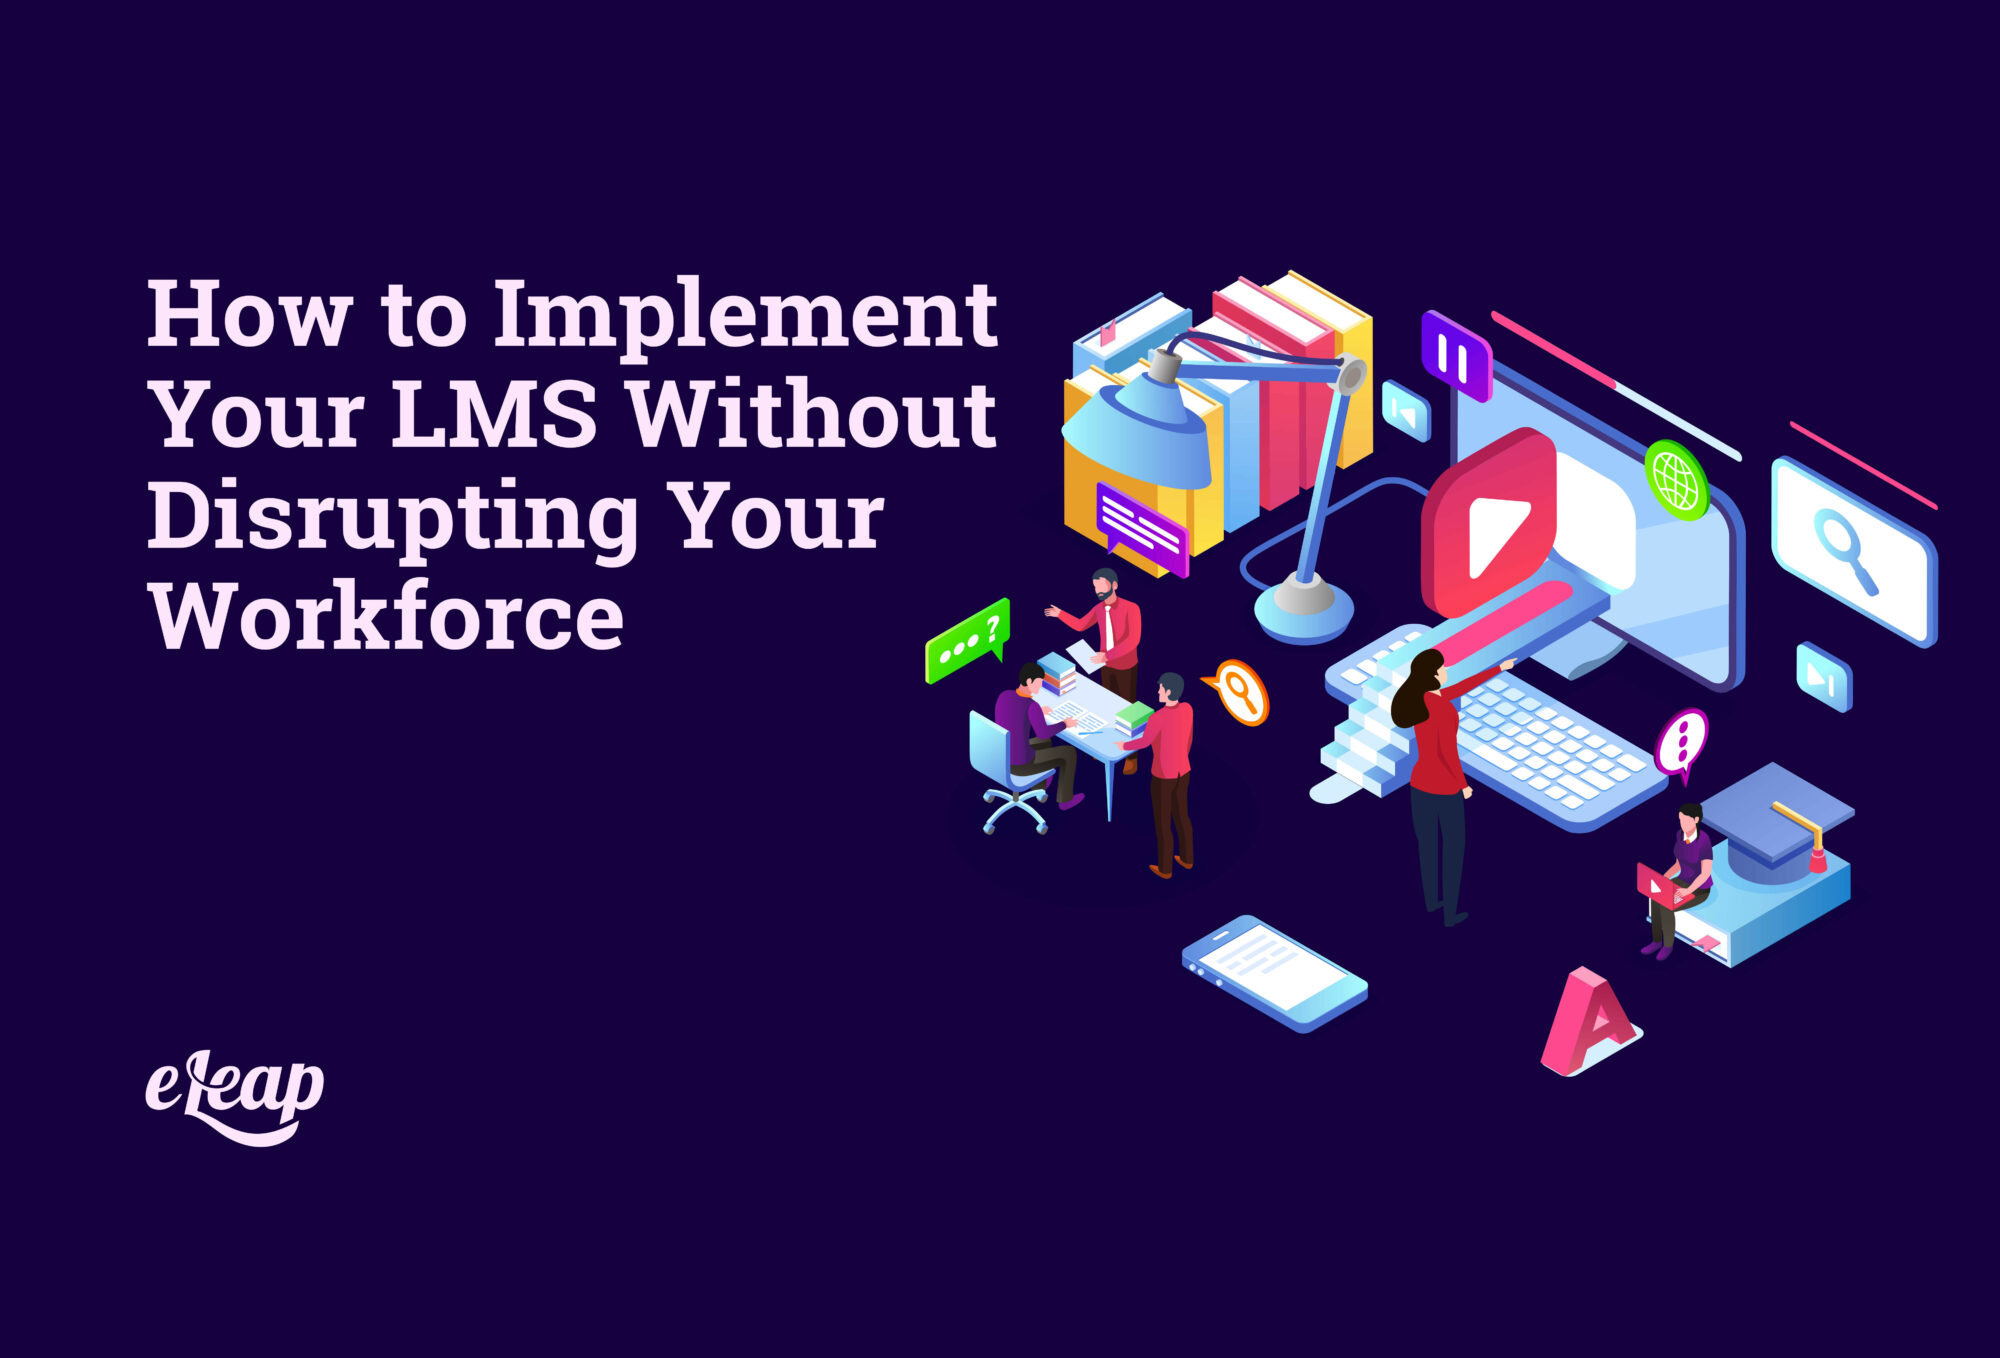 How to Implement Your LMS Without Disrupting Your Workforce